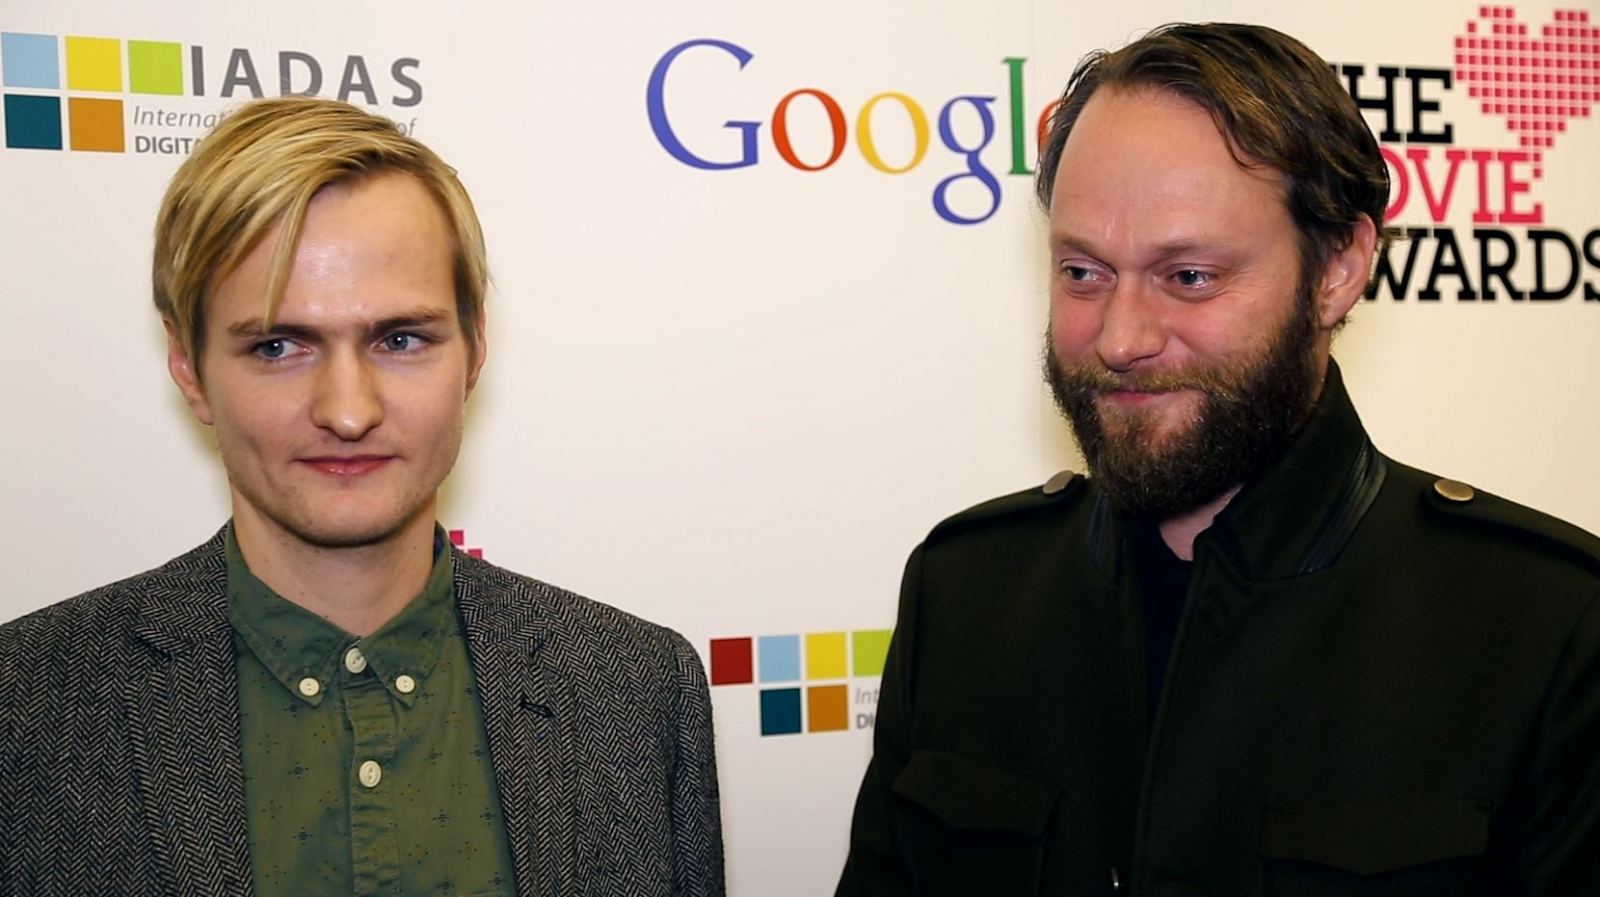 Sigur Ros' online manager Bjorn Floki (L) and bassist Georg Holm speak to IBTimes TV exclusively at the Lovie Awards 2014